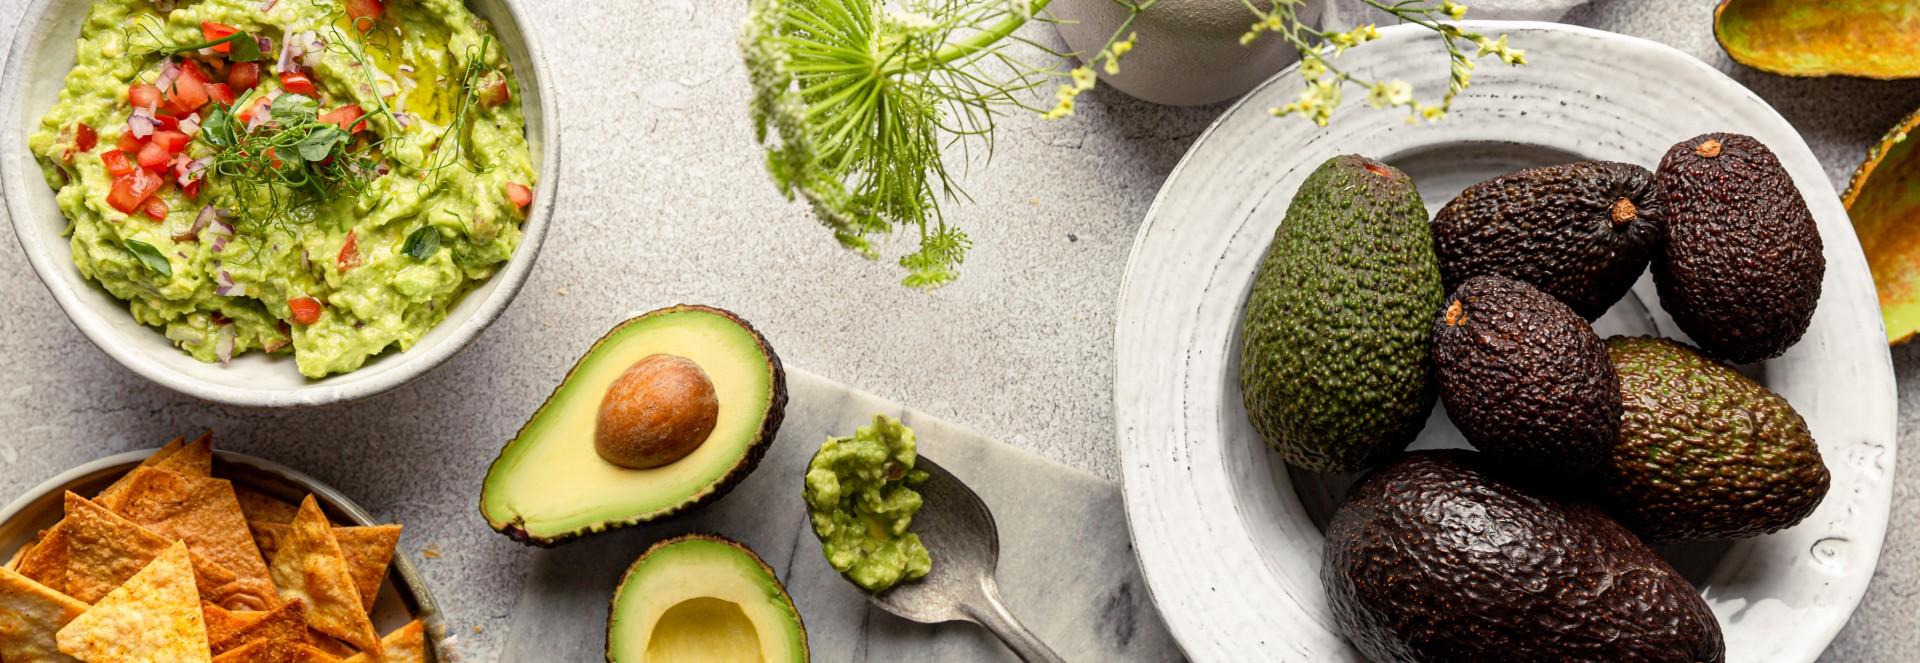 SPAR Mahlzeit Avocado Inspiration Header